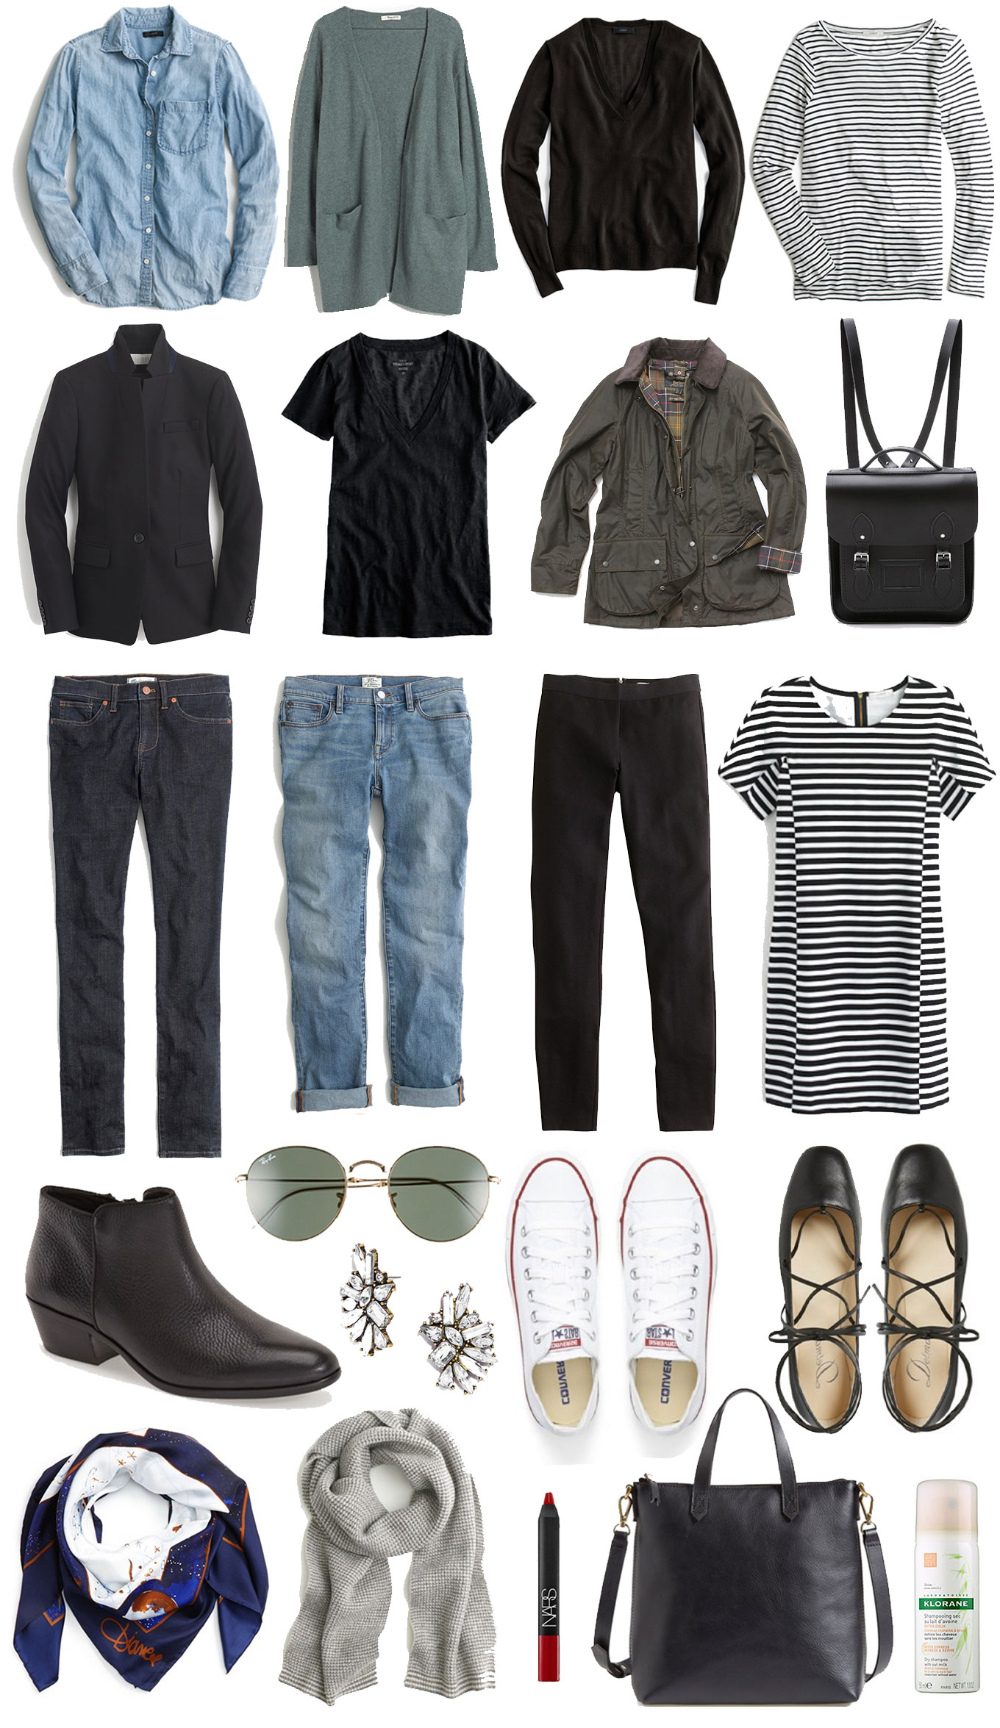 A Travel Capsule Wardrobe: Your Ultimate Packing List #ultimatepackinglist A Travel Capsule Wardrobe: Your Ultimate Packing List #ultimatepackinglist